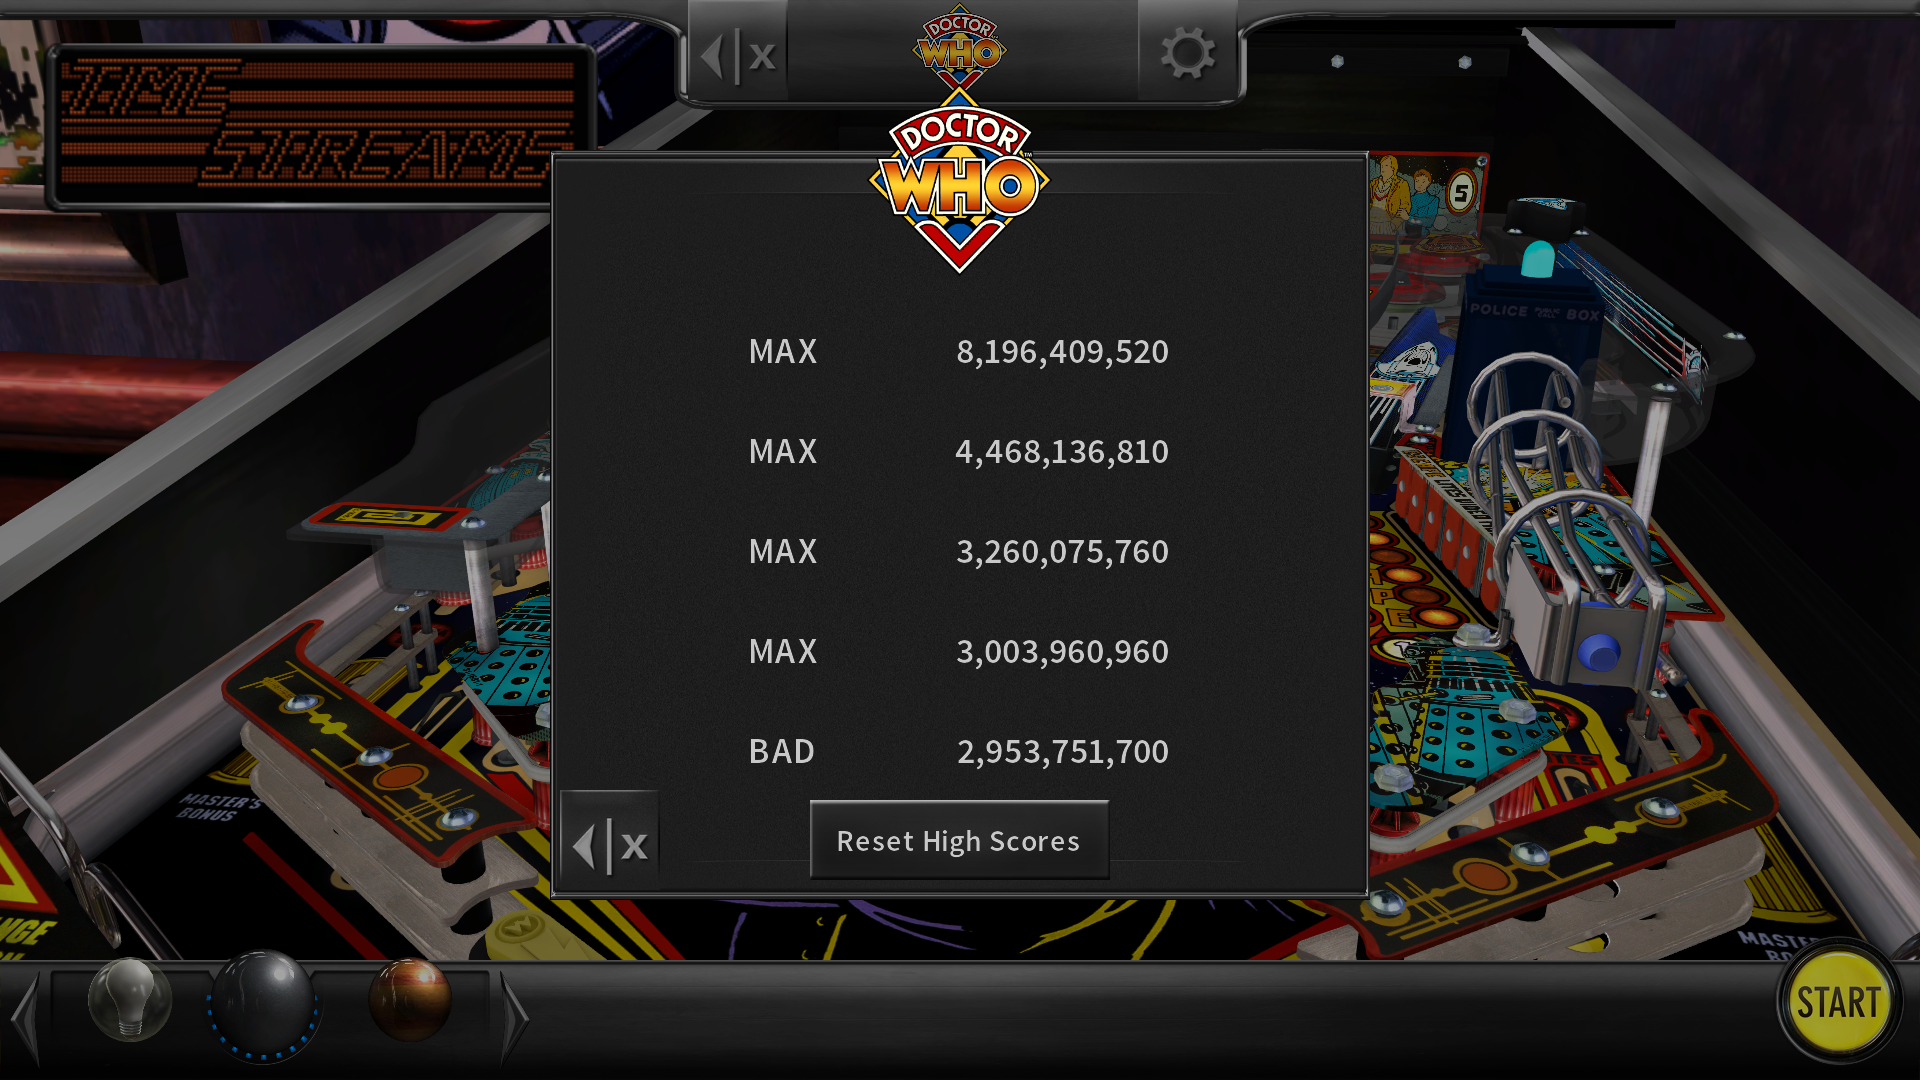 Pinball Arcade: Doctor Who: Master of Time 8,196,409,520 points